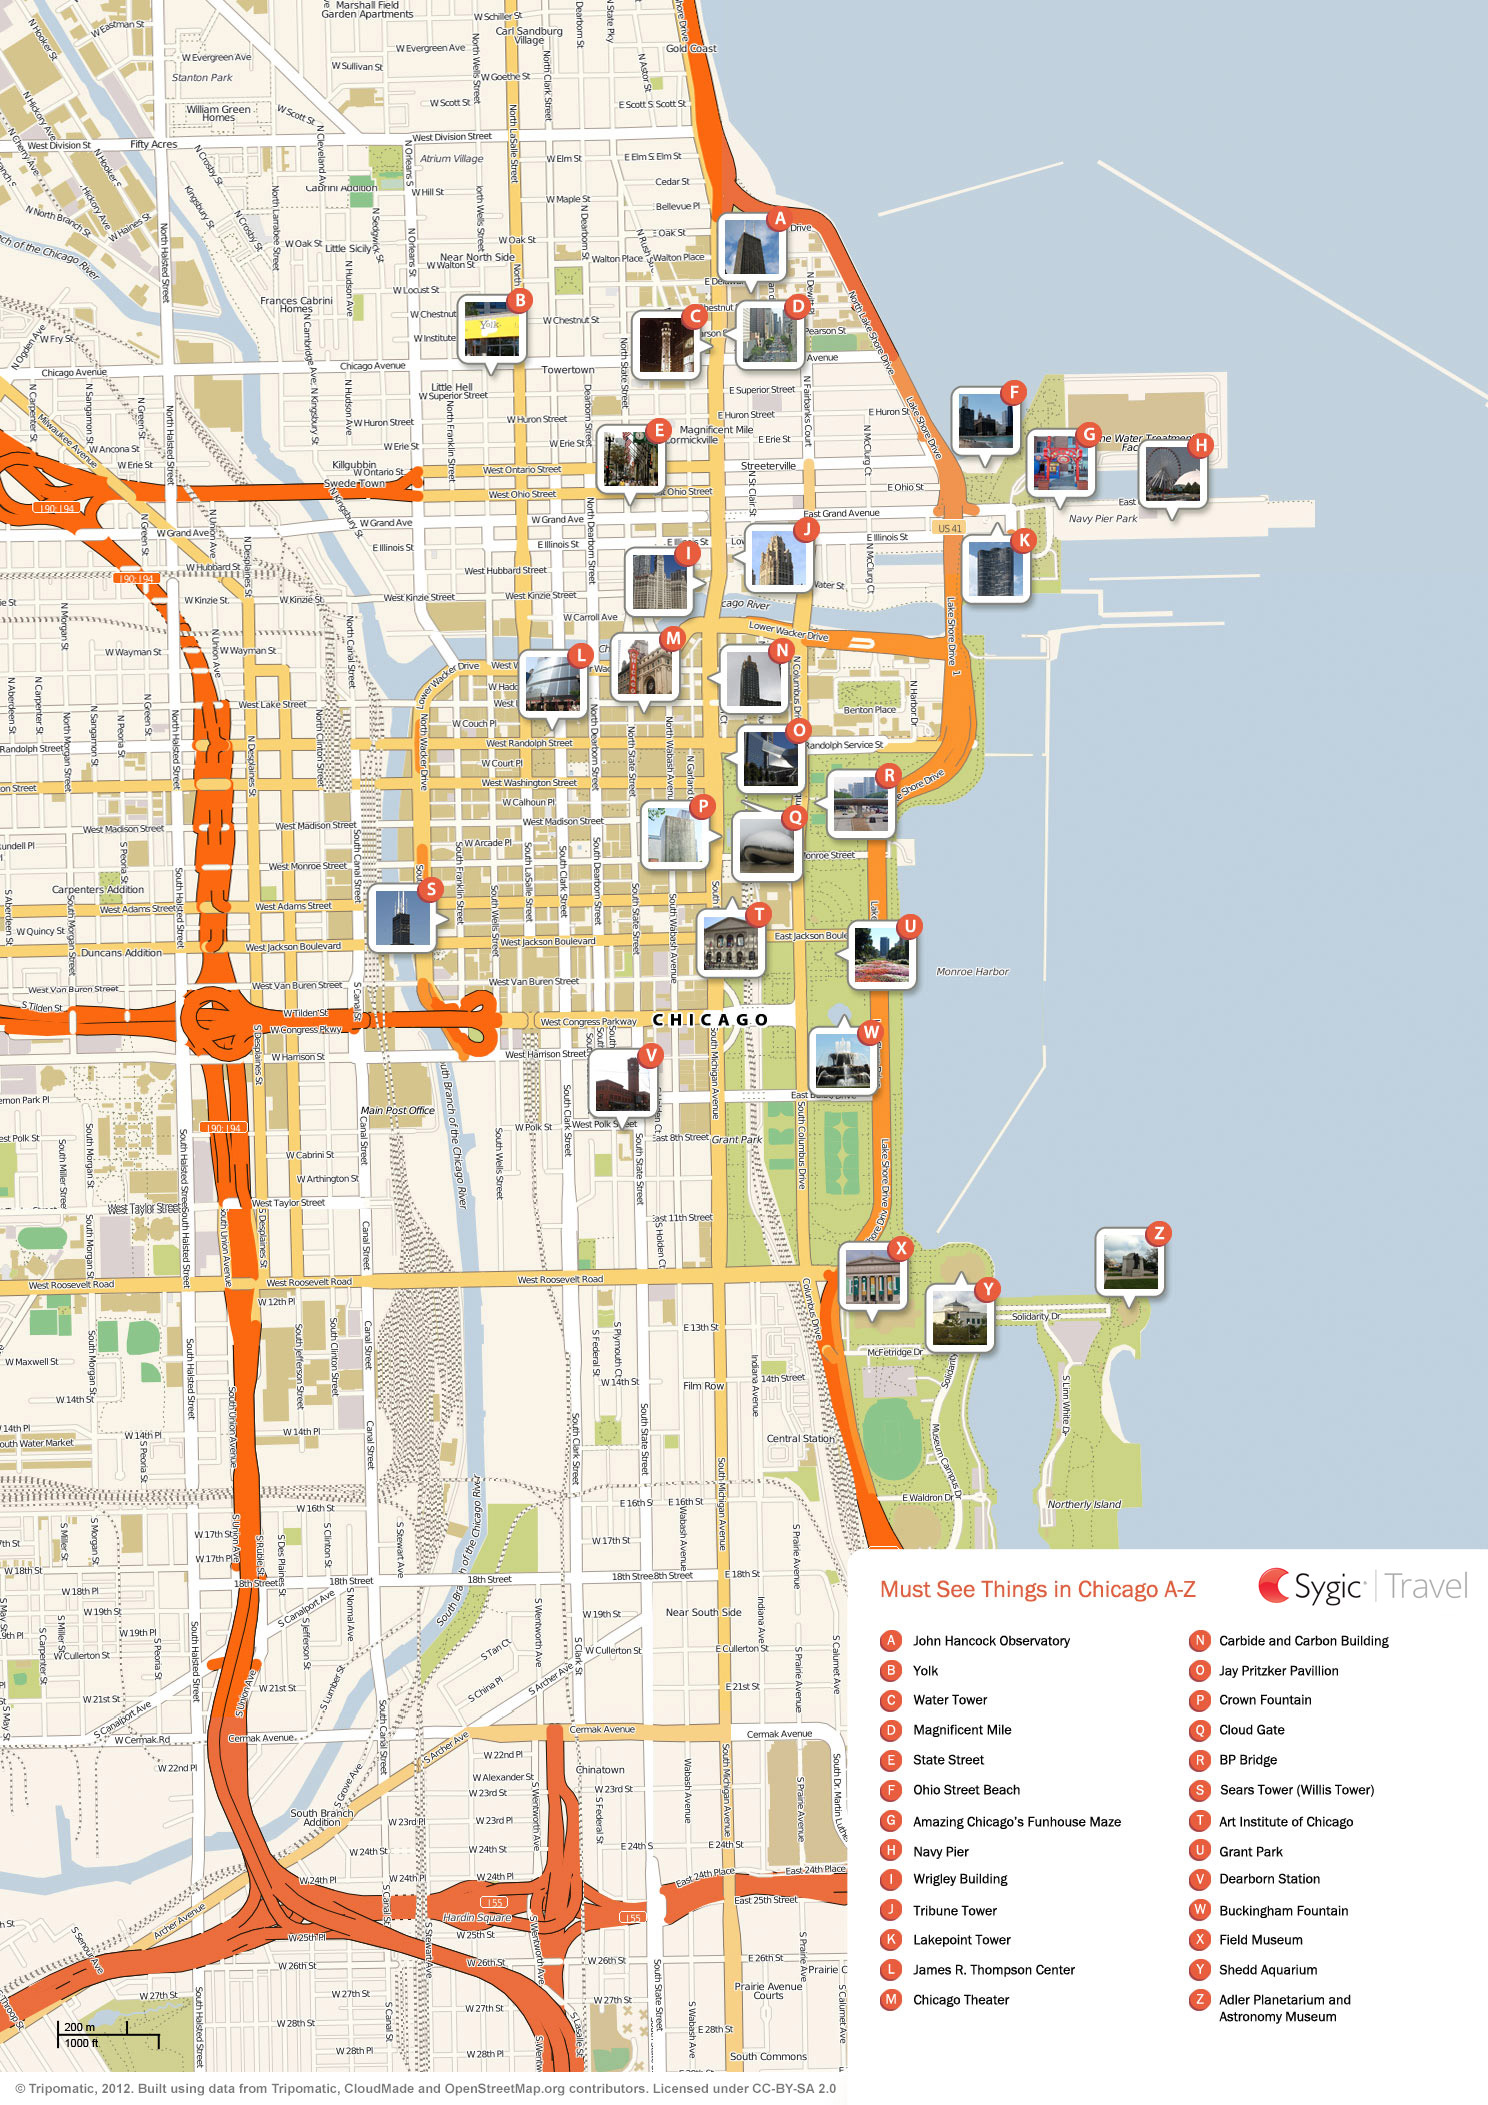 Chicago Printable Tourist Map – Tourist Attractions Map In Chicago